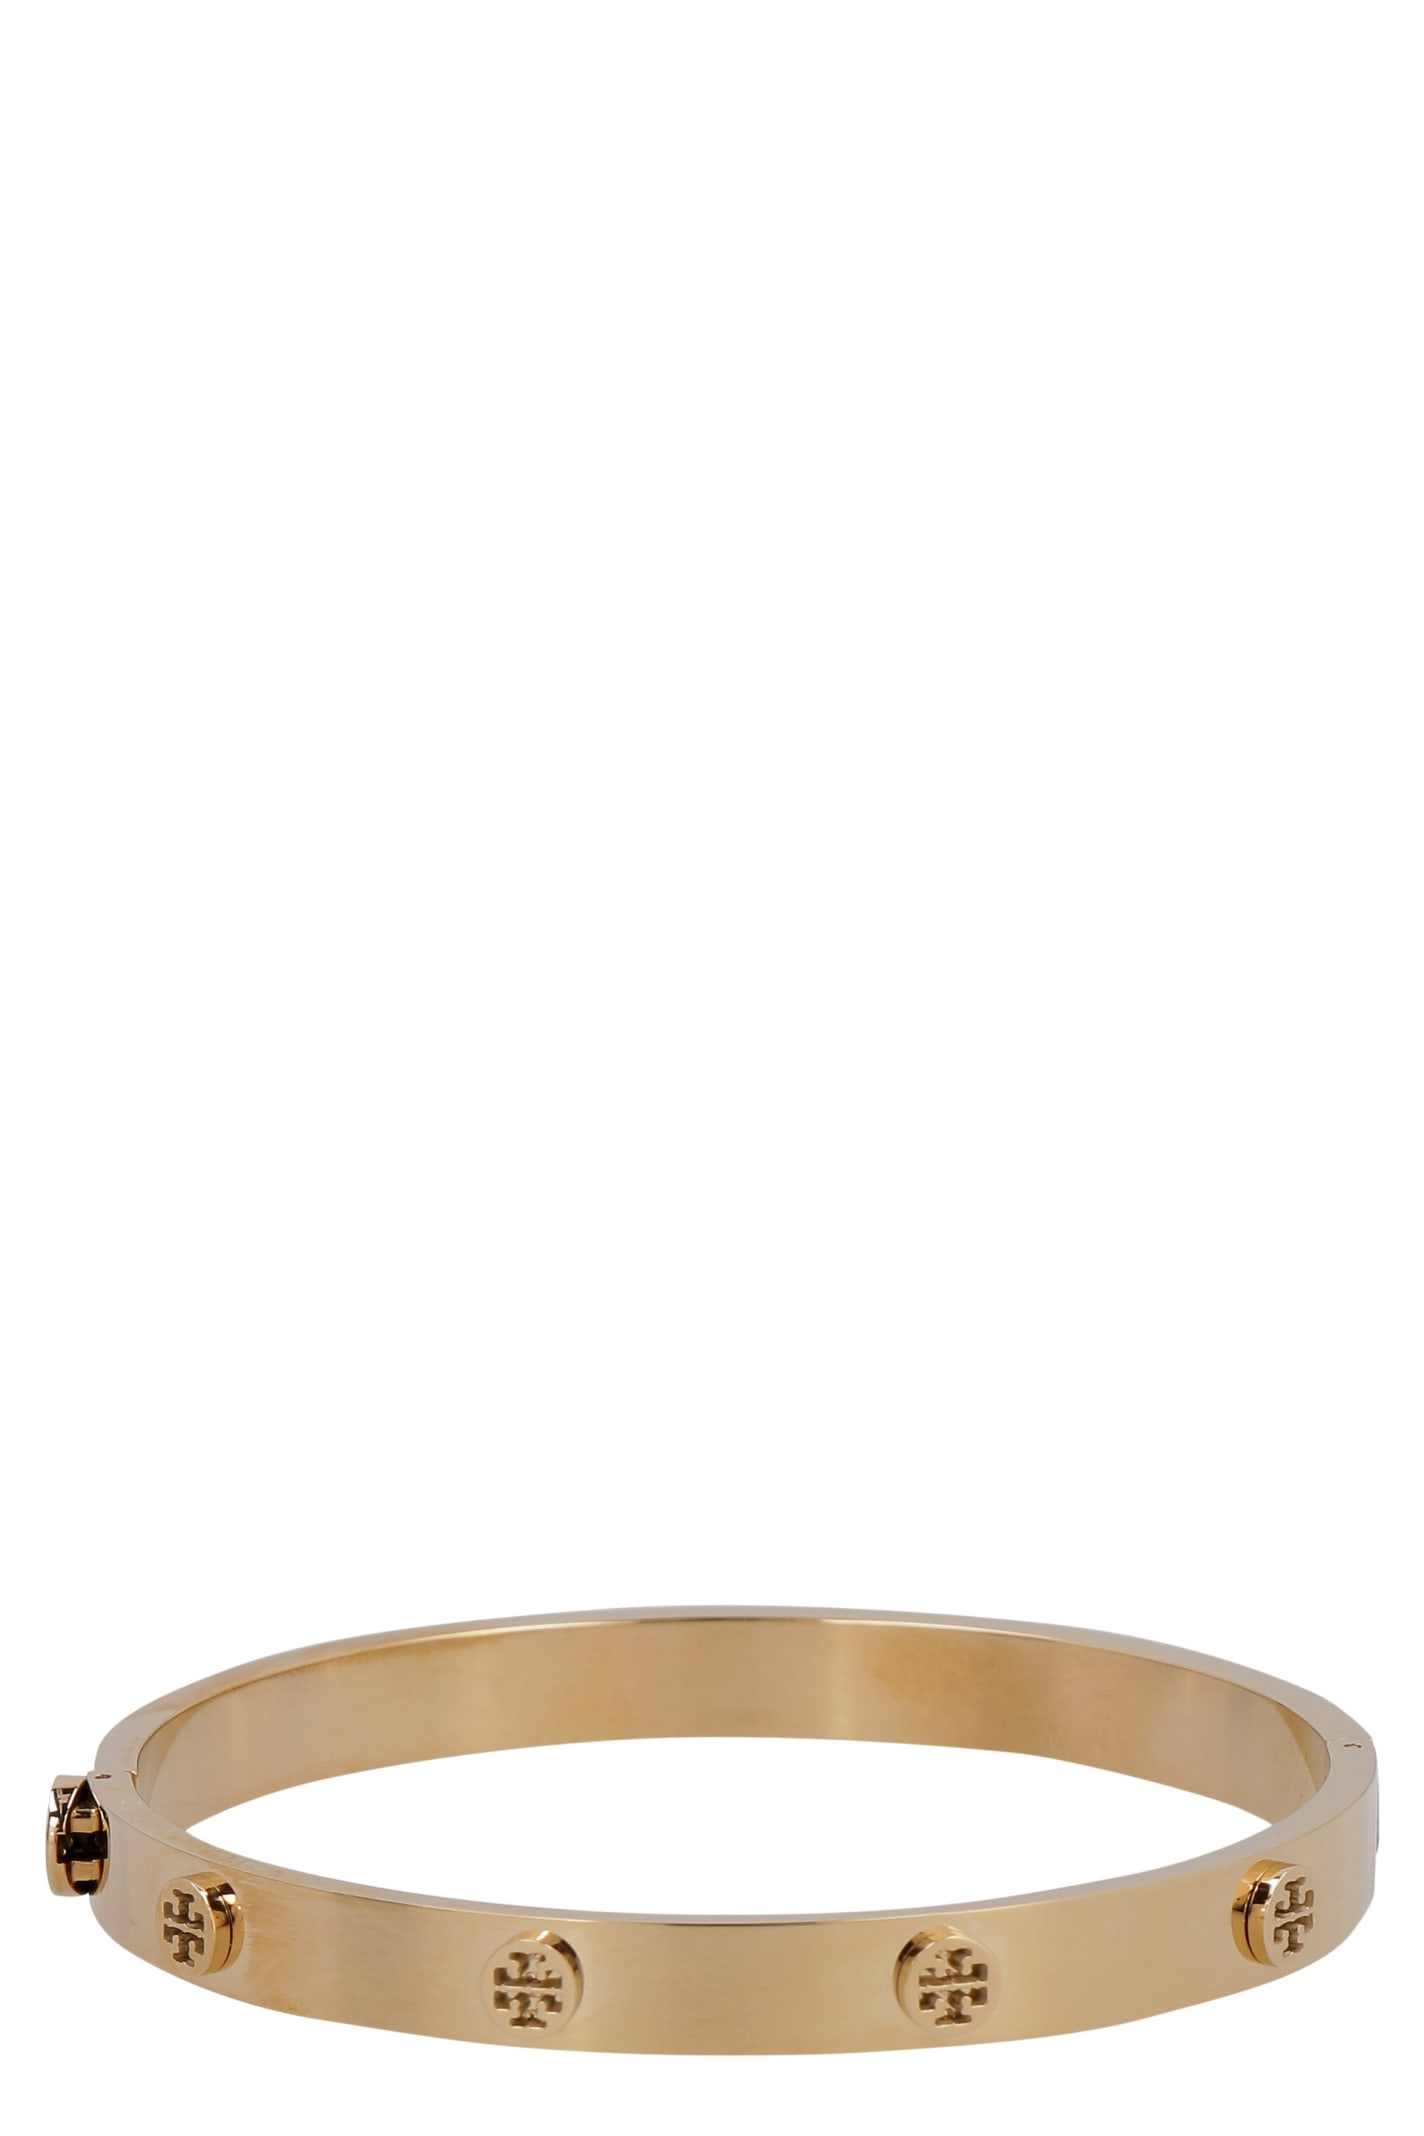 Tory Burch Kira Hinged Brass Bracelet